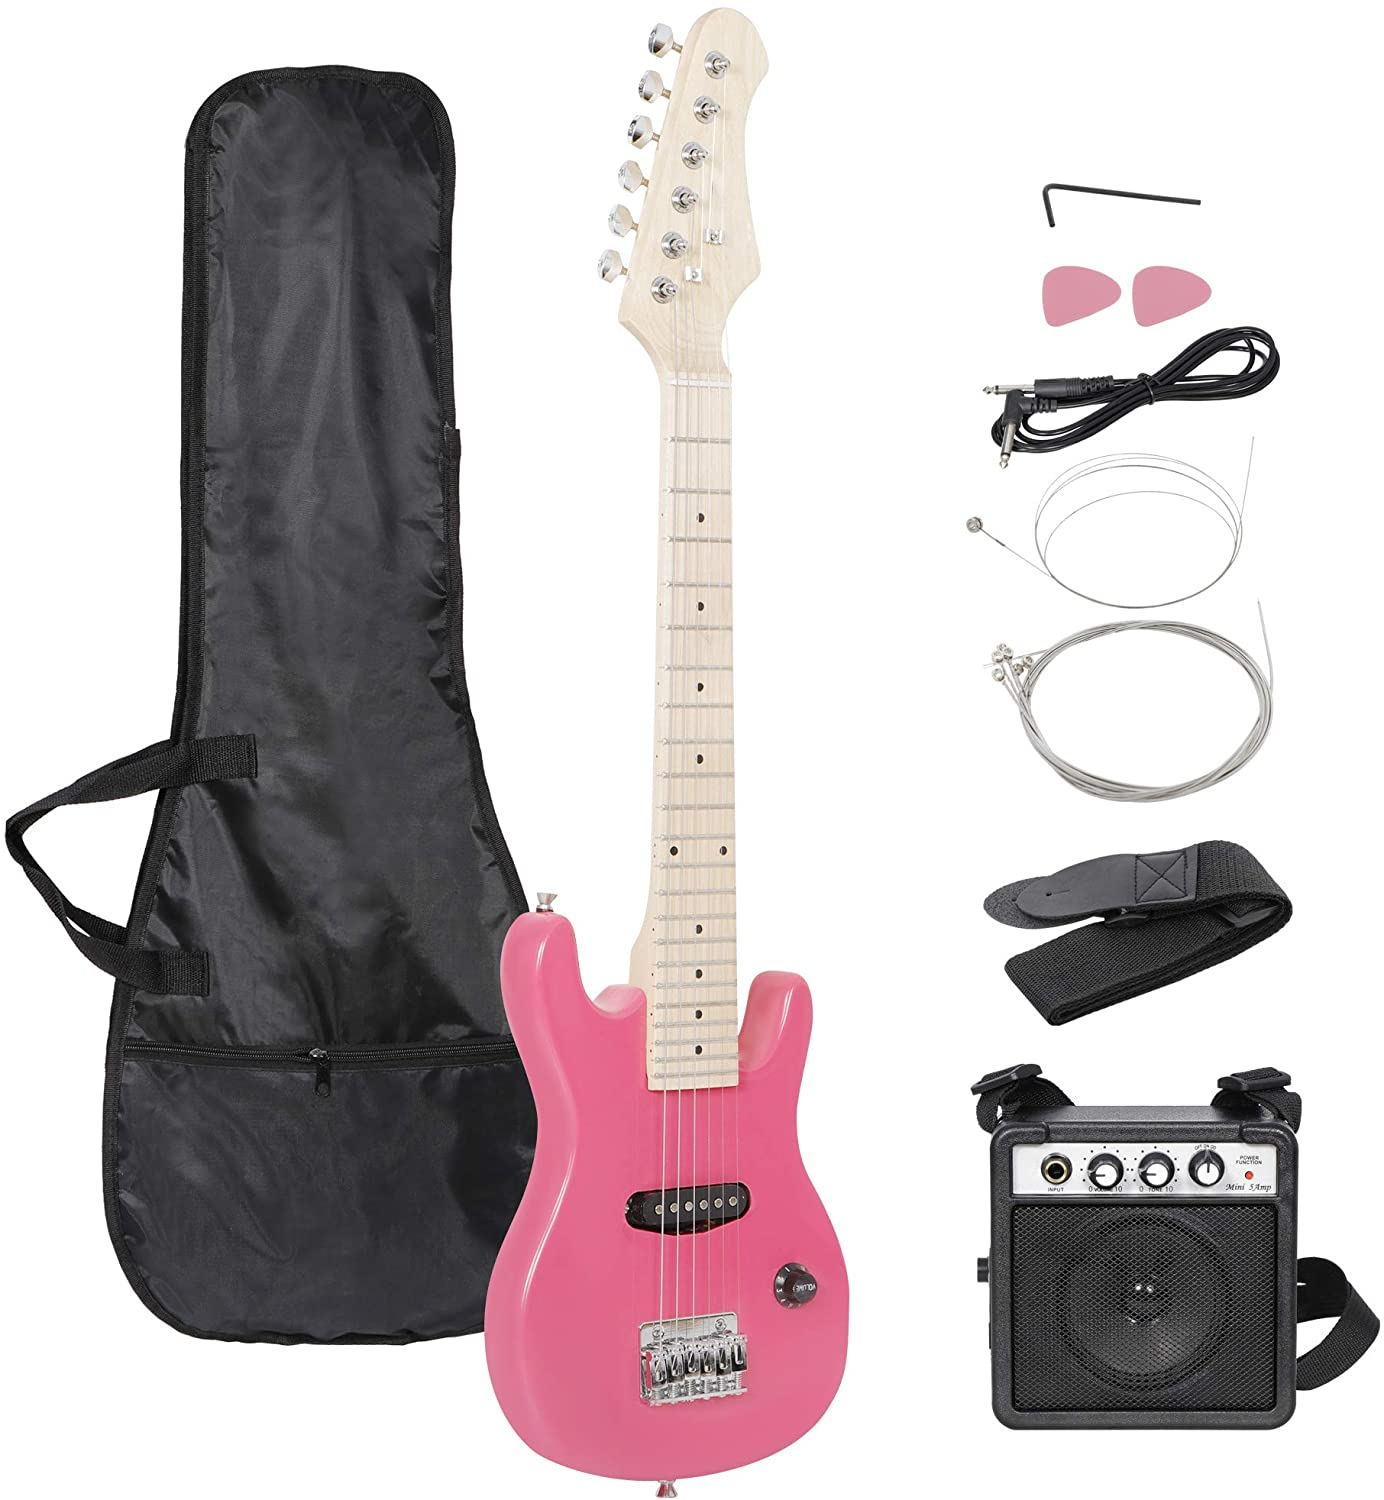 with 3 Watt Mini Rechargeable Electric Guitar Amp Cable Bag Strap Donner DLP-124P Solid Body Full-Size 39 Inch LP Electric Guitar Kit Shell Pink for Beginner